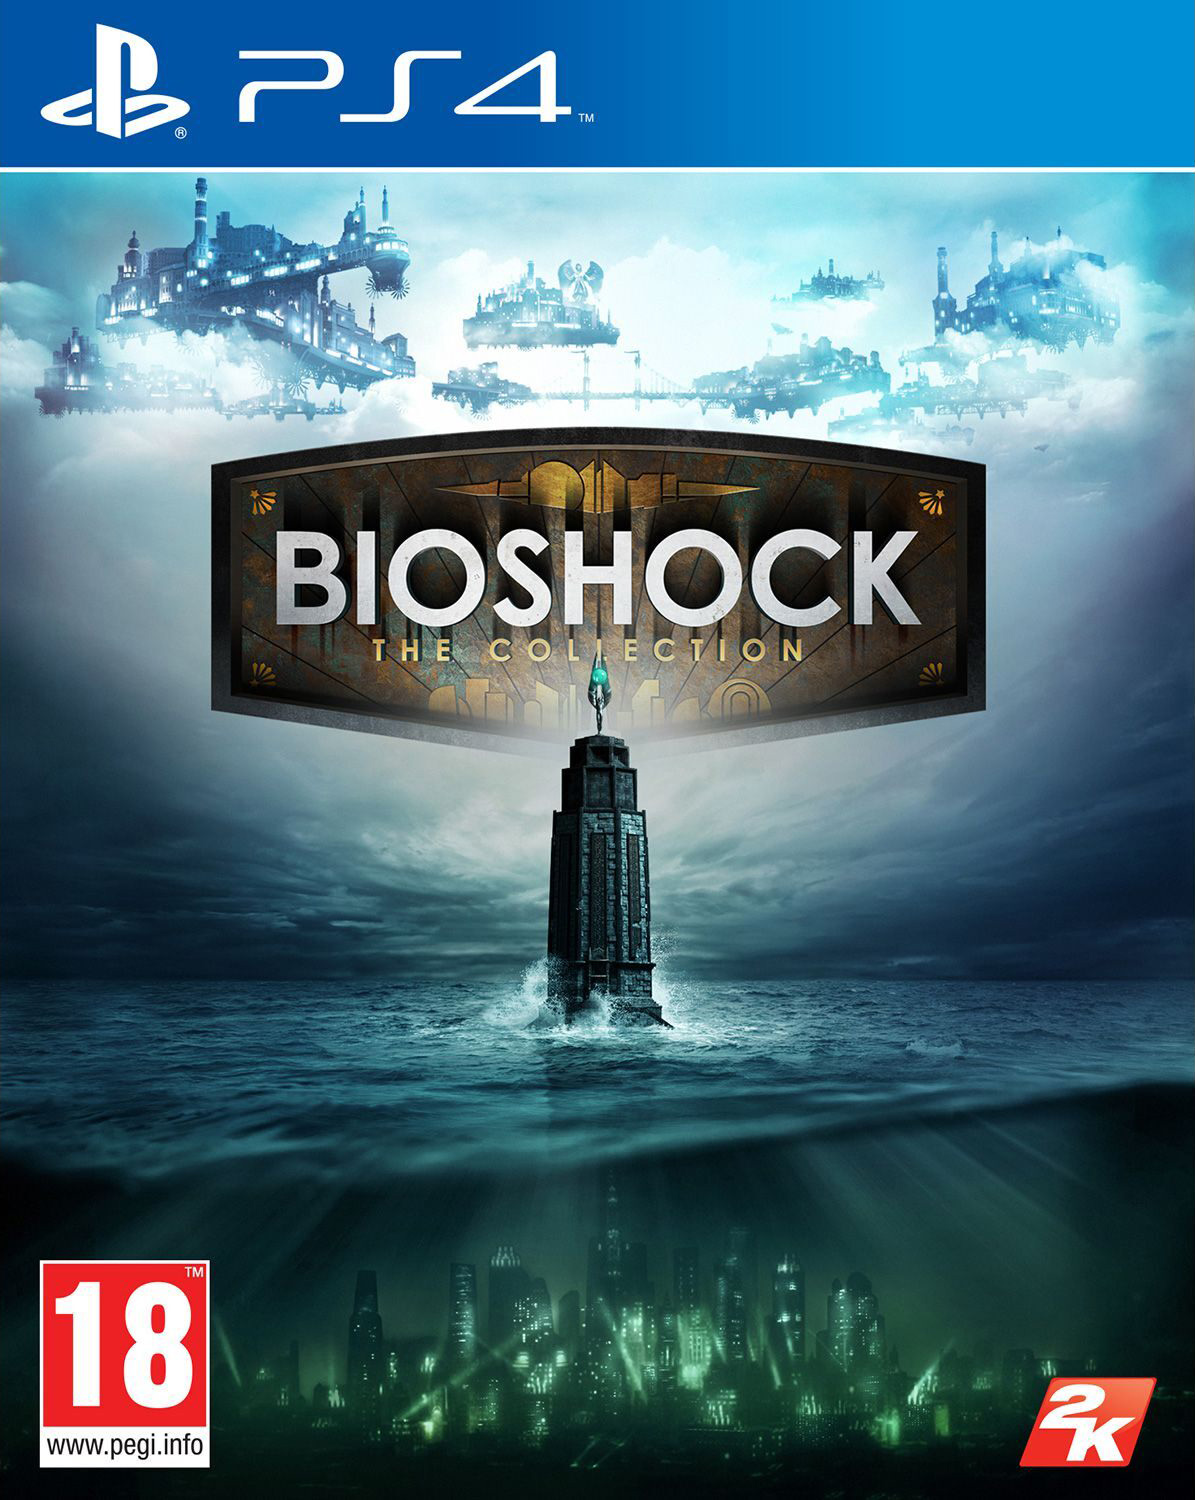 Bioshock The Collection [PS4] 5.05 / 6.72 [EUR] (2016) [Английский] (v1.00)